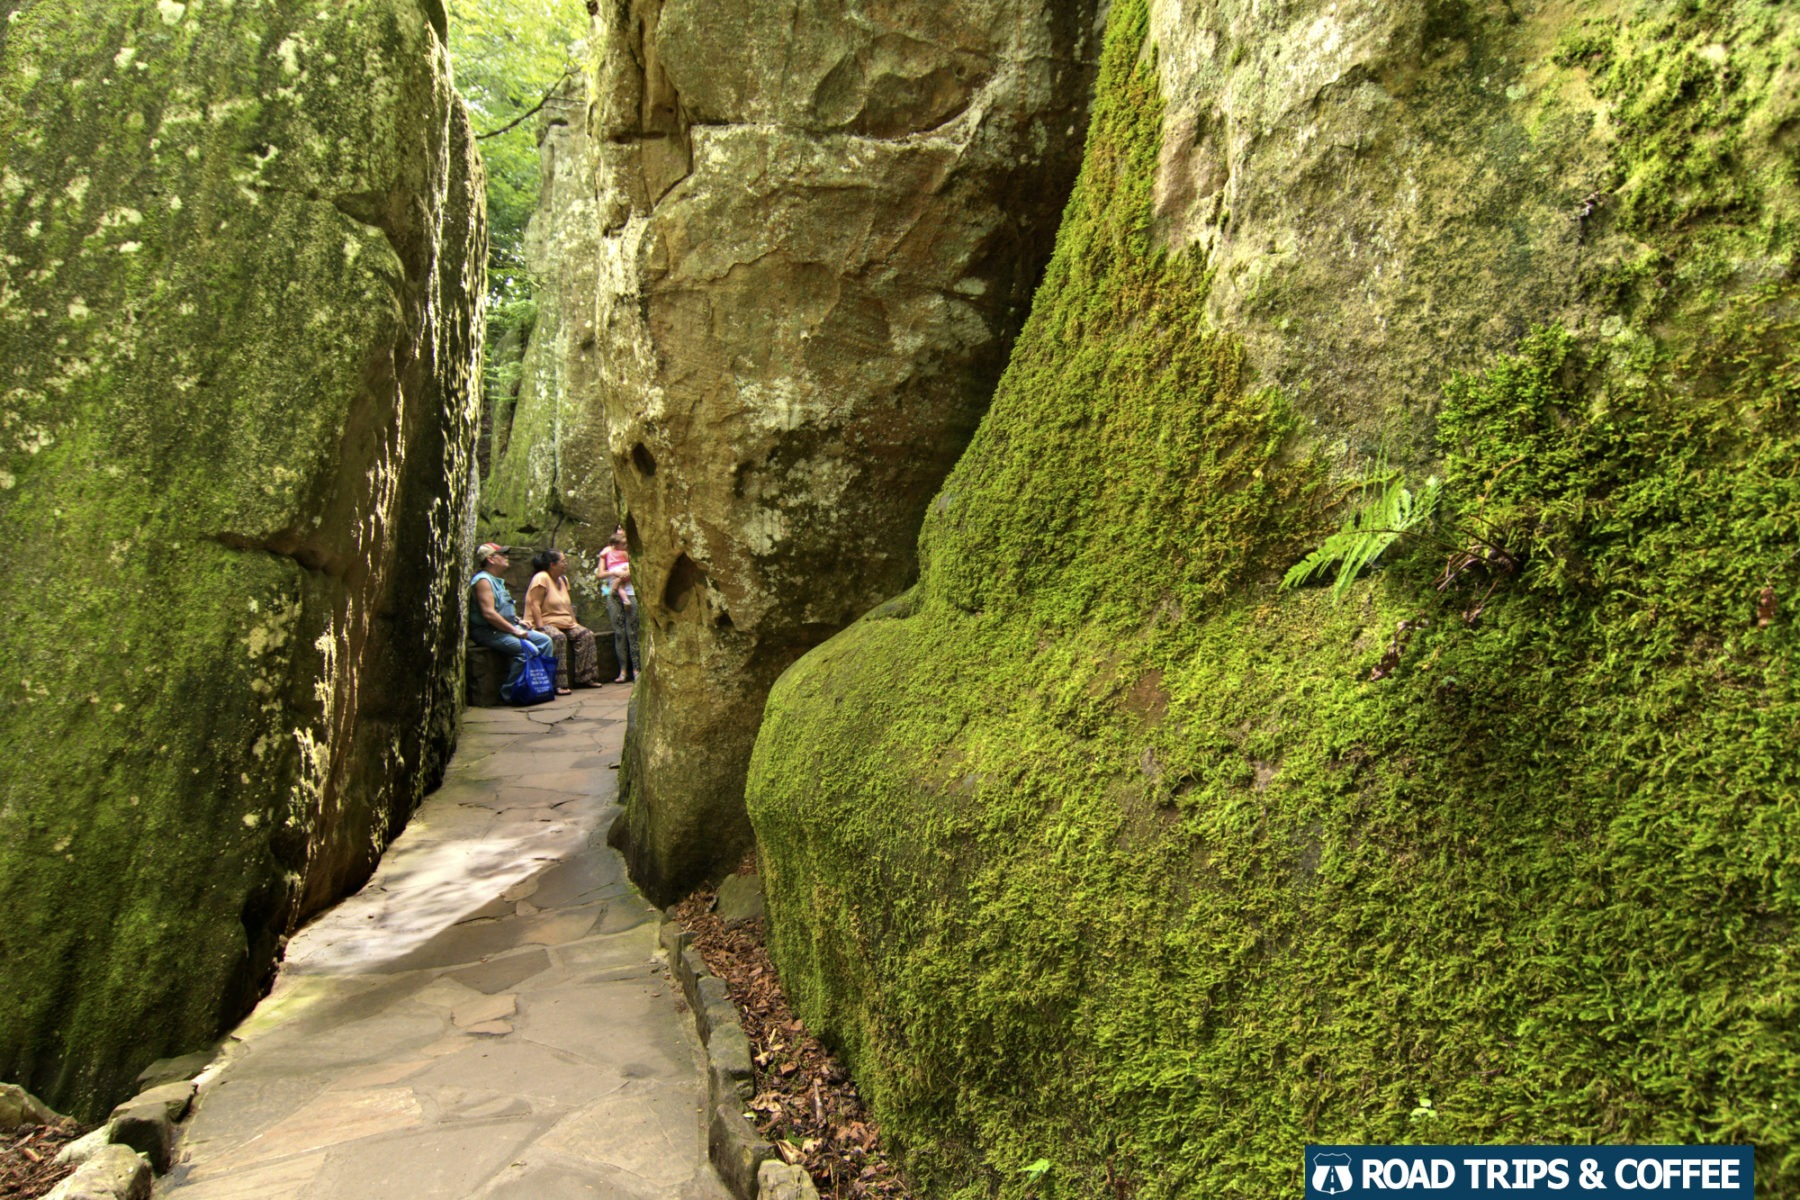 Moss covered rocky walls with a narrow path through the middle at Rock City in Lookout Mountain, Tennessee